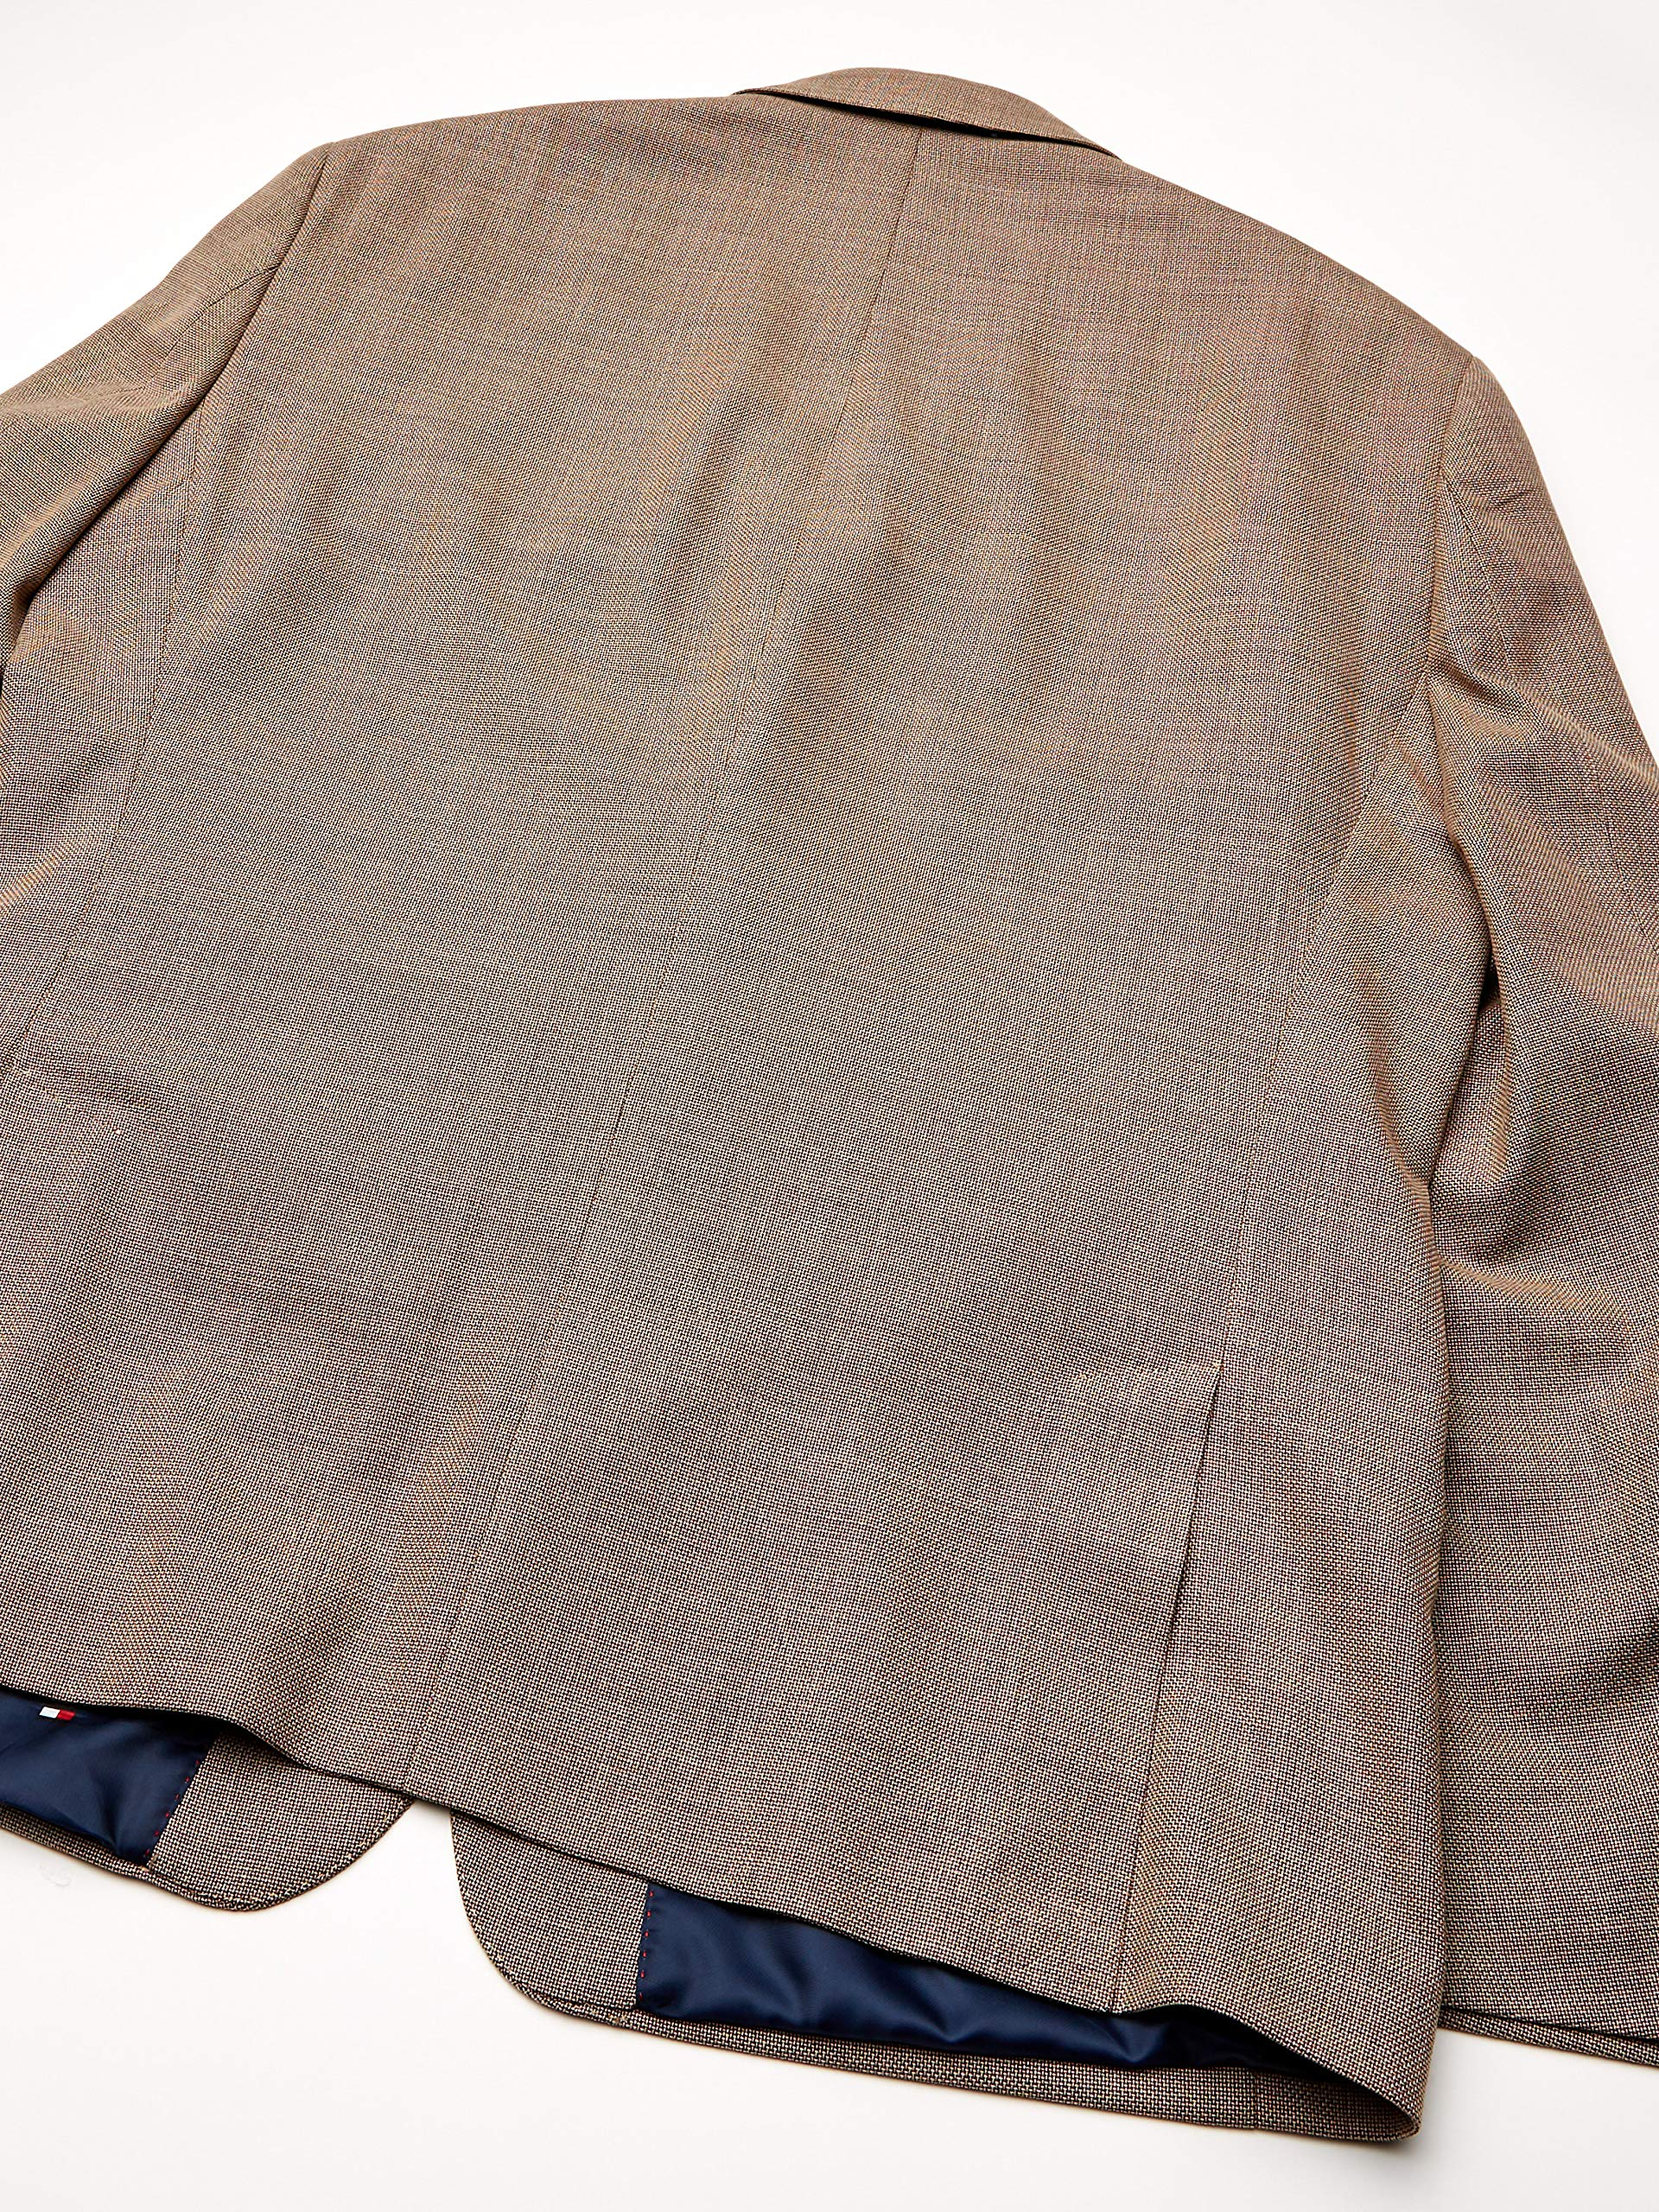 Tommy Hilfiger Men's Big and Tall Modern Blazer, Rustic Brown, 54R by Tommy Hilfiger (Image #2)